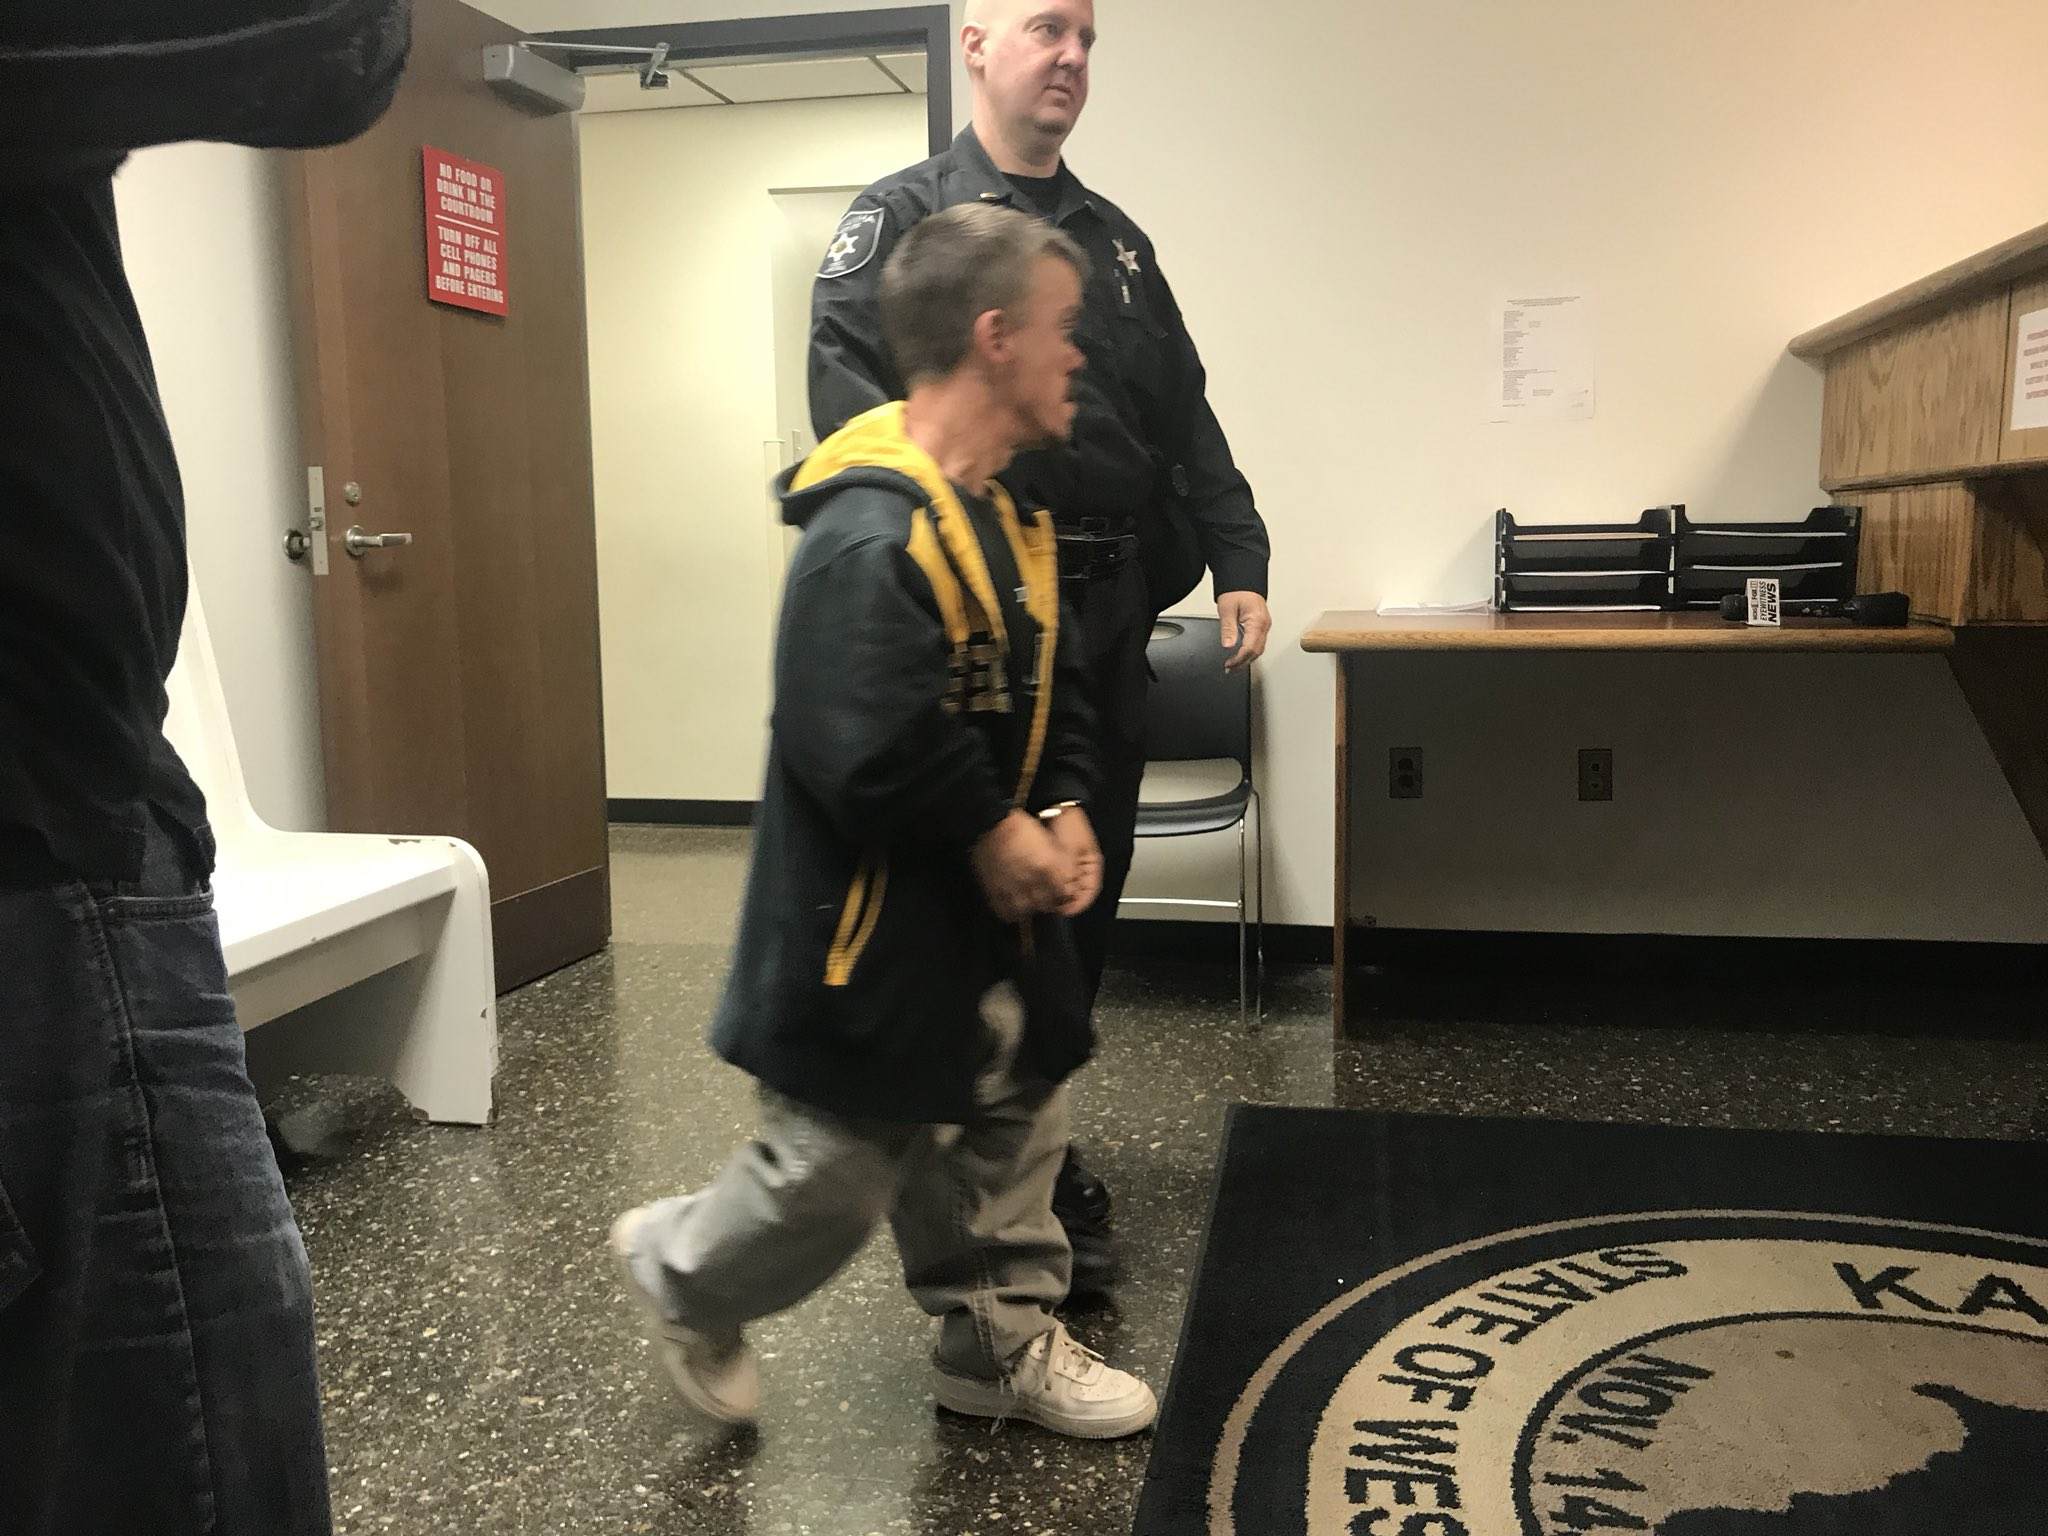 Robert Goff appears in Kanawha County Magistrate Court Monday after he was accused of stealing a vehicle and firing off rounds with his child and wife inside the vehicle. (WCHS/WVAH)<p></p>